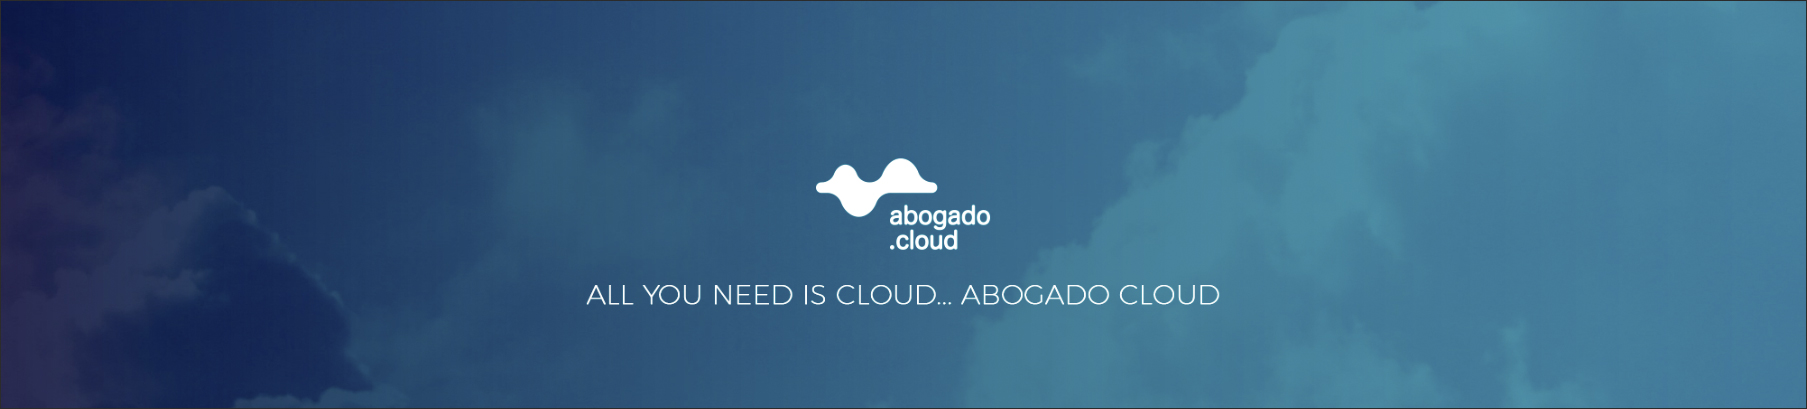 EMPERADOR: cloud para abogados nube adaptada flexible